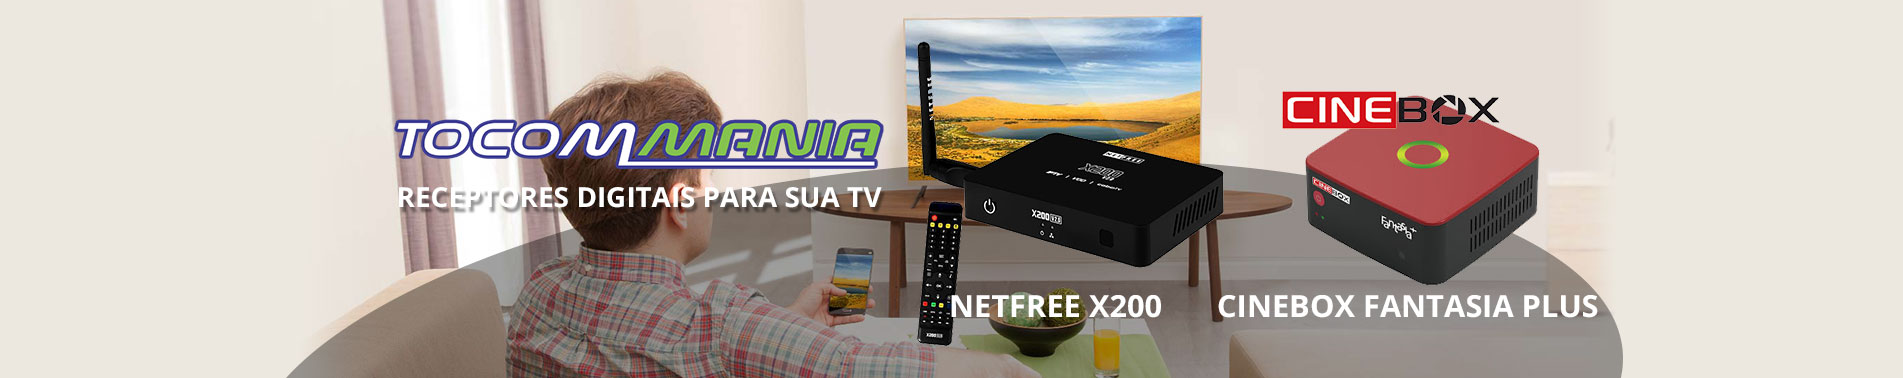 Receptores e Desbloqueadores Netfree x200 Cinebox Fantasia Plus